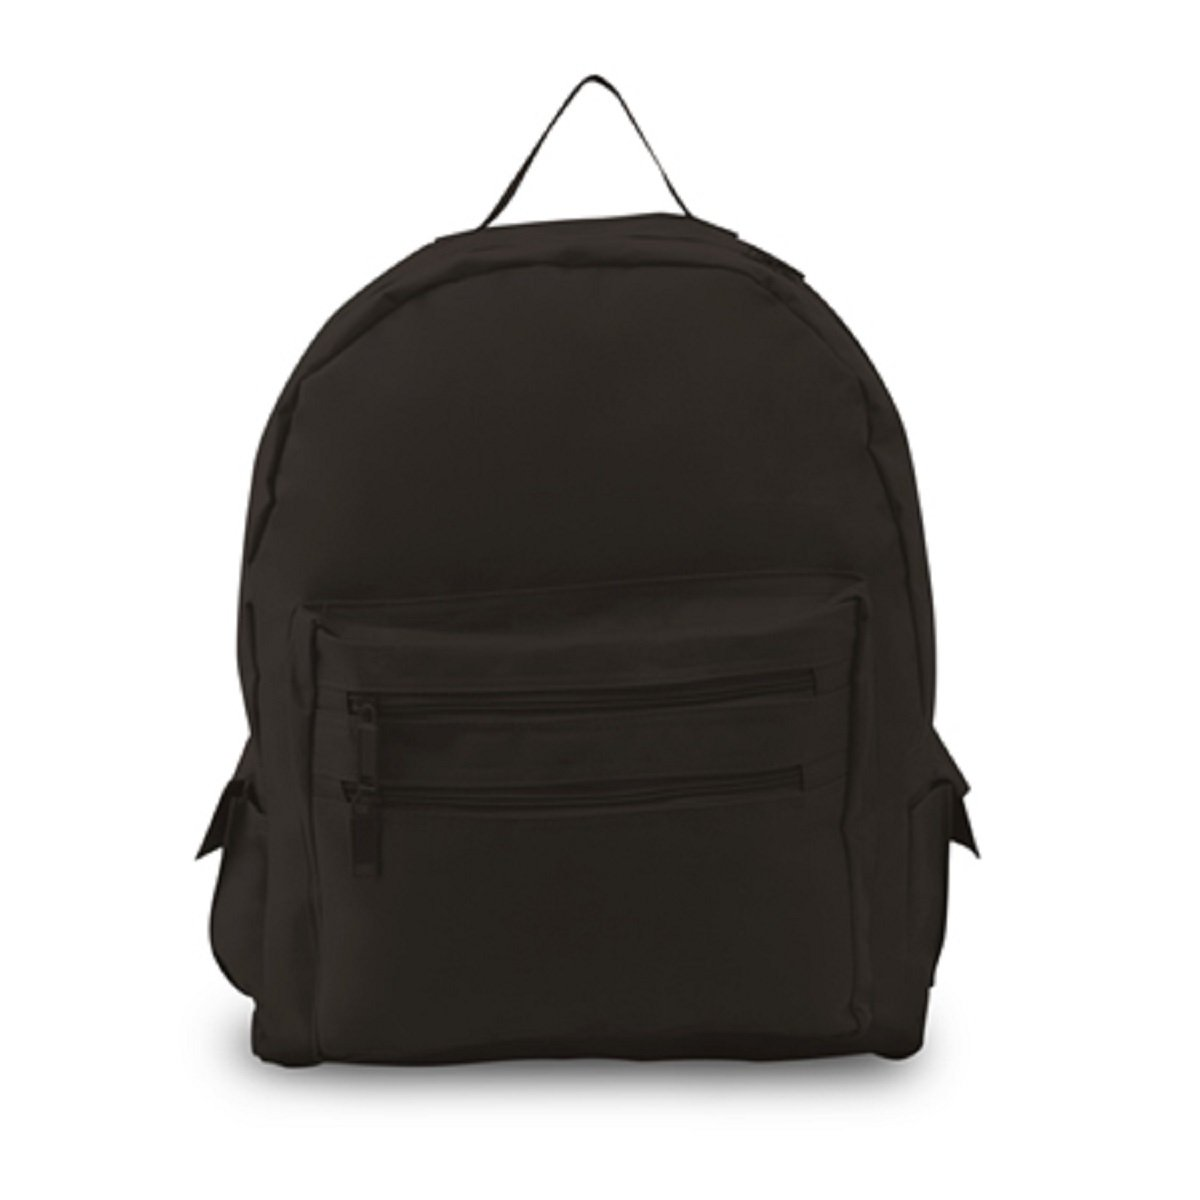 BACKPACK ON A BUDGET, Black, Case of 12 by DollarItemDirect